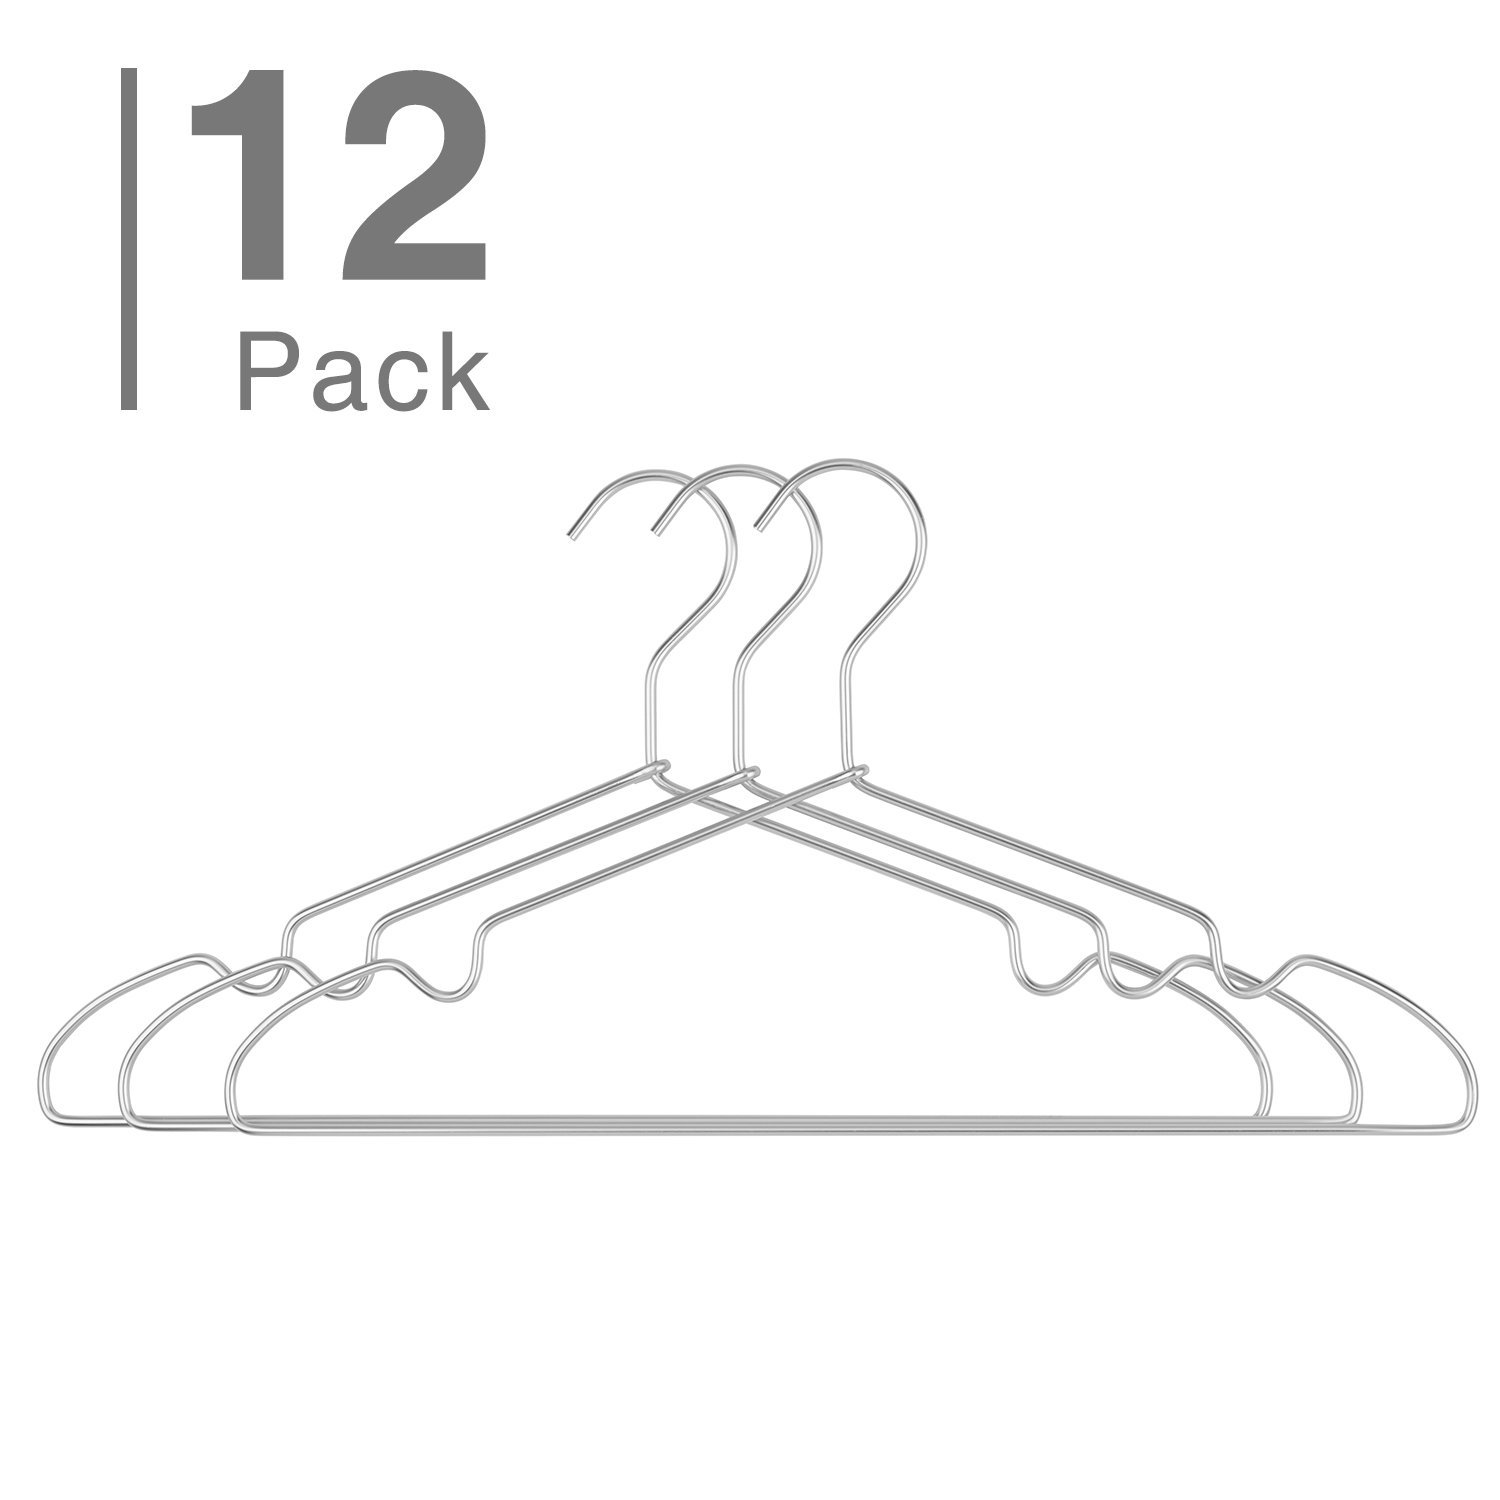 Buy HOUSE DAY Chrome Hangers Metal Hangers 20 Pack Strong